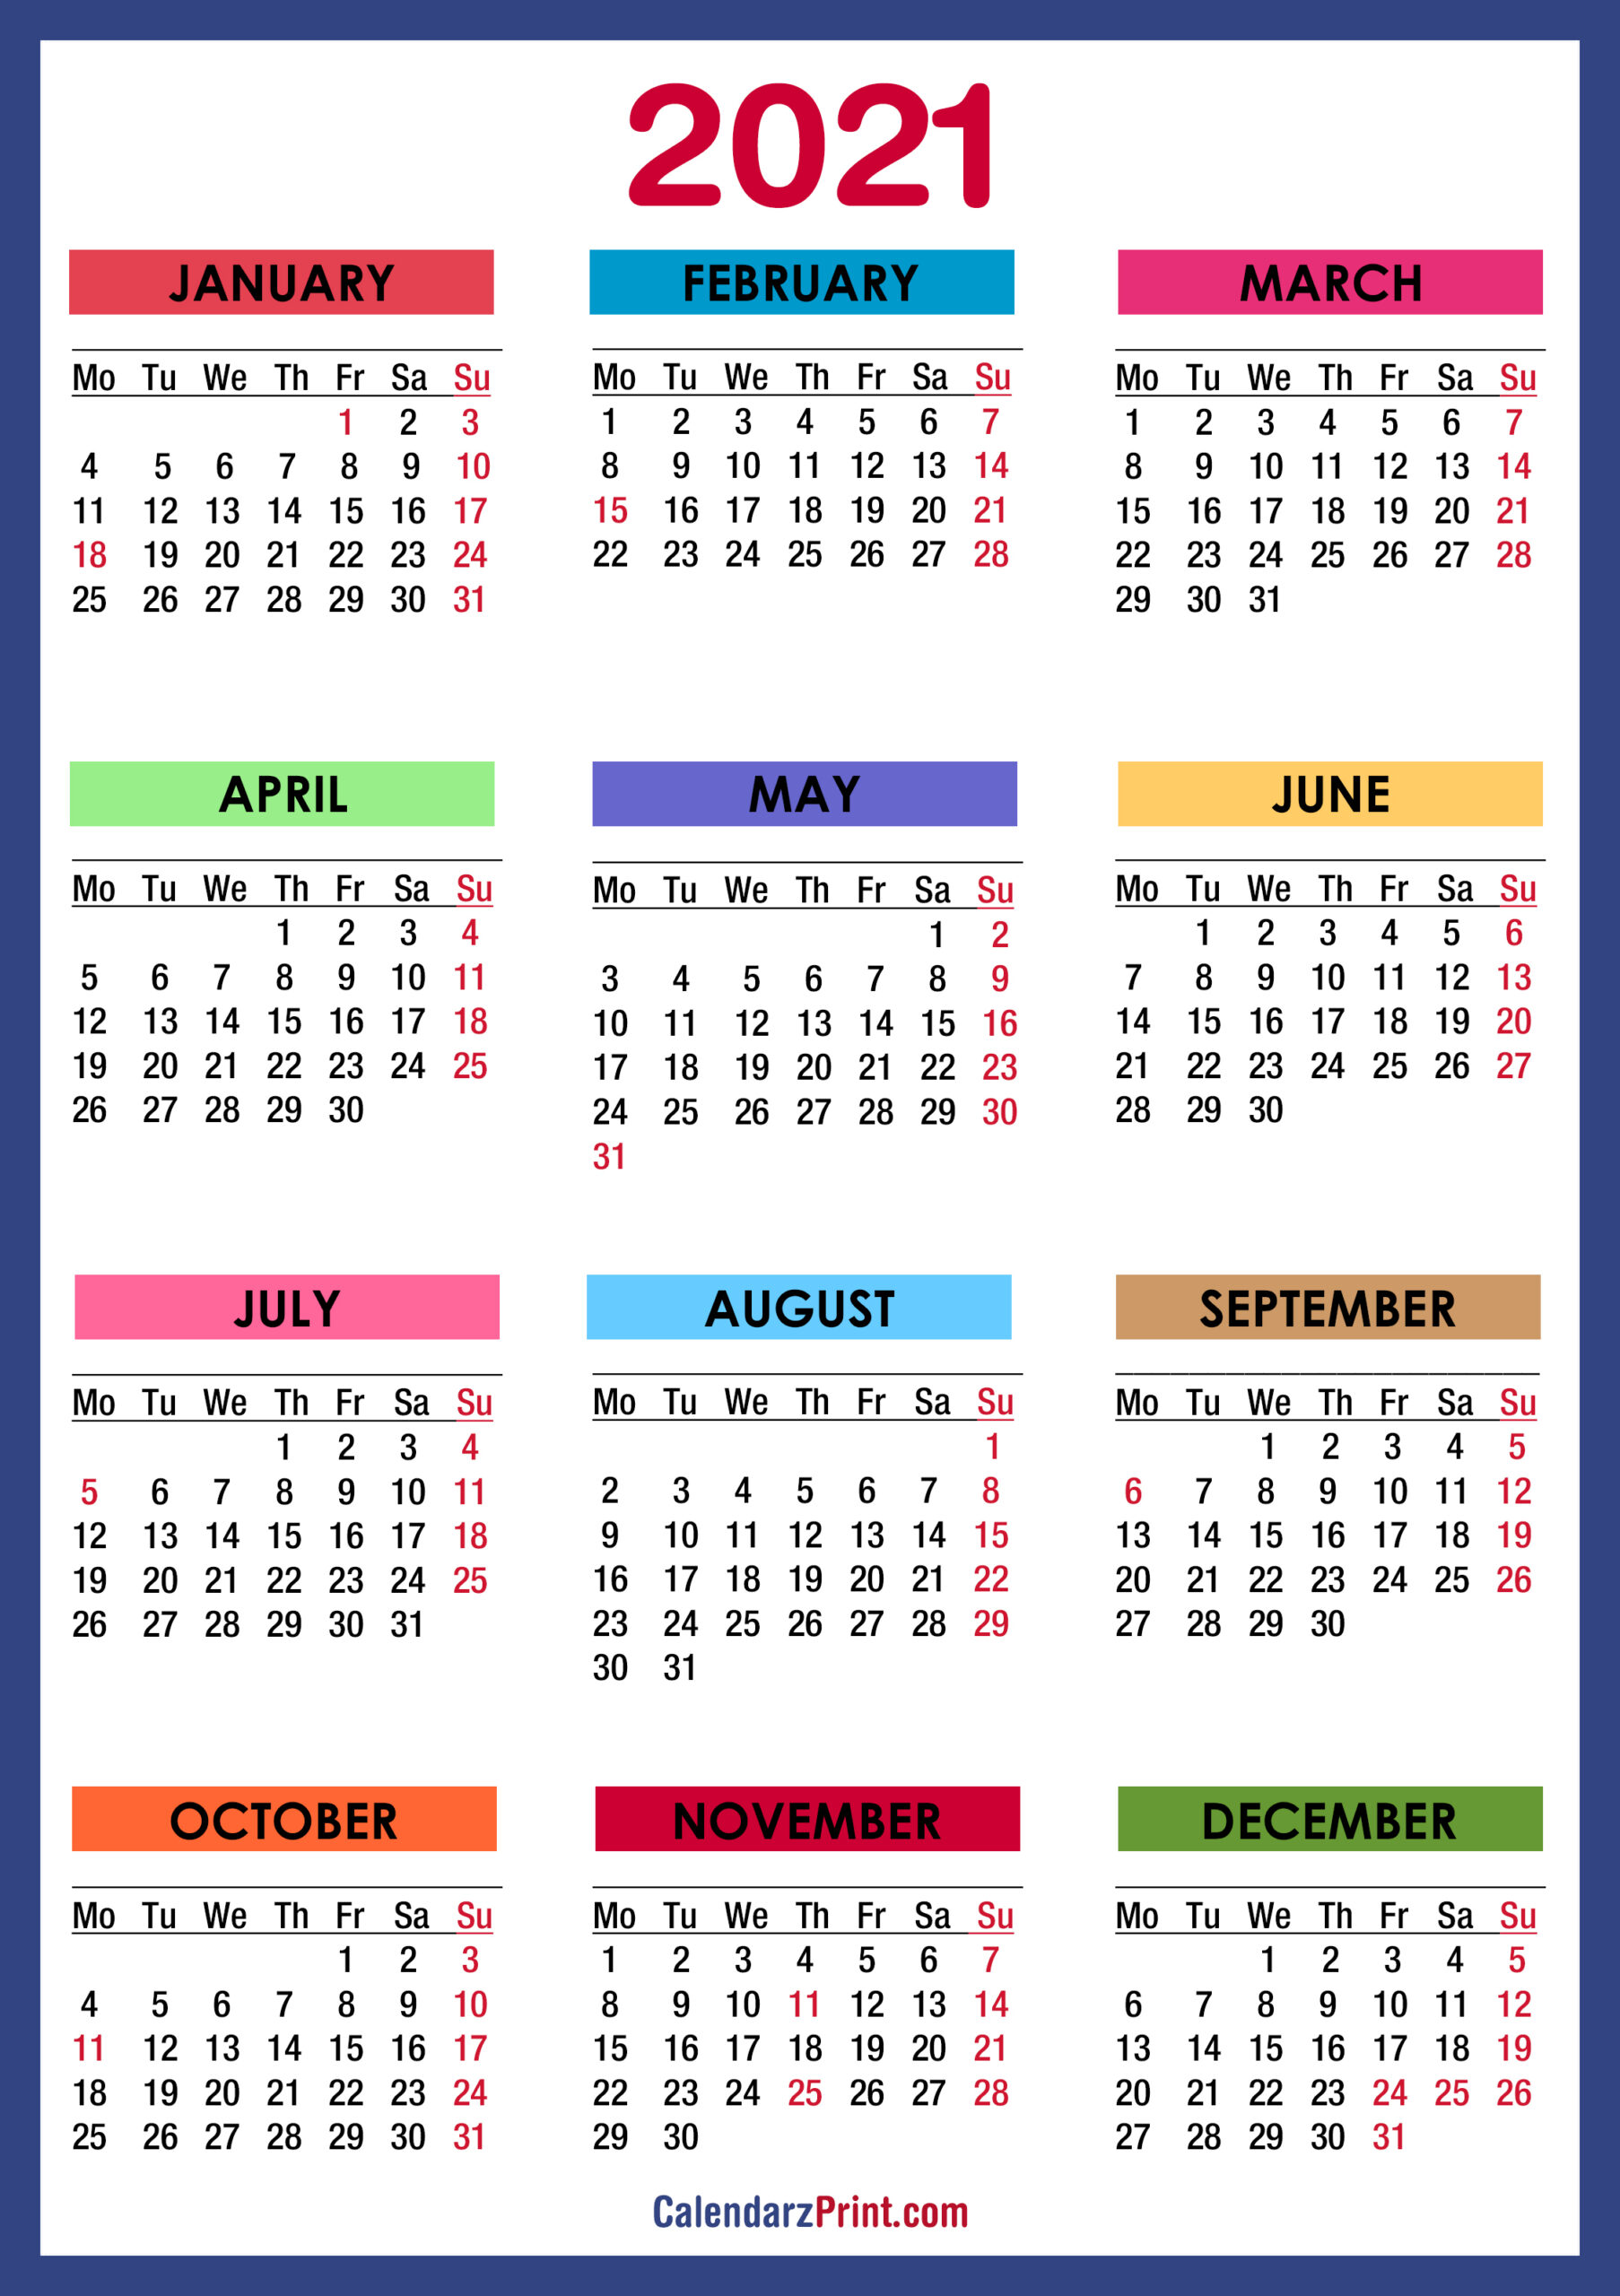 2021 Calendars With Us Holidays